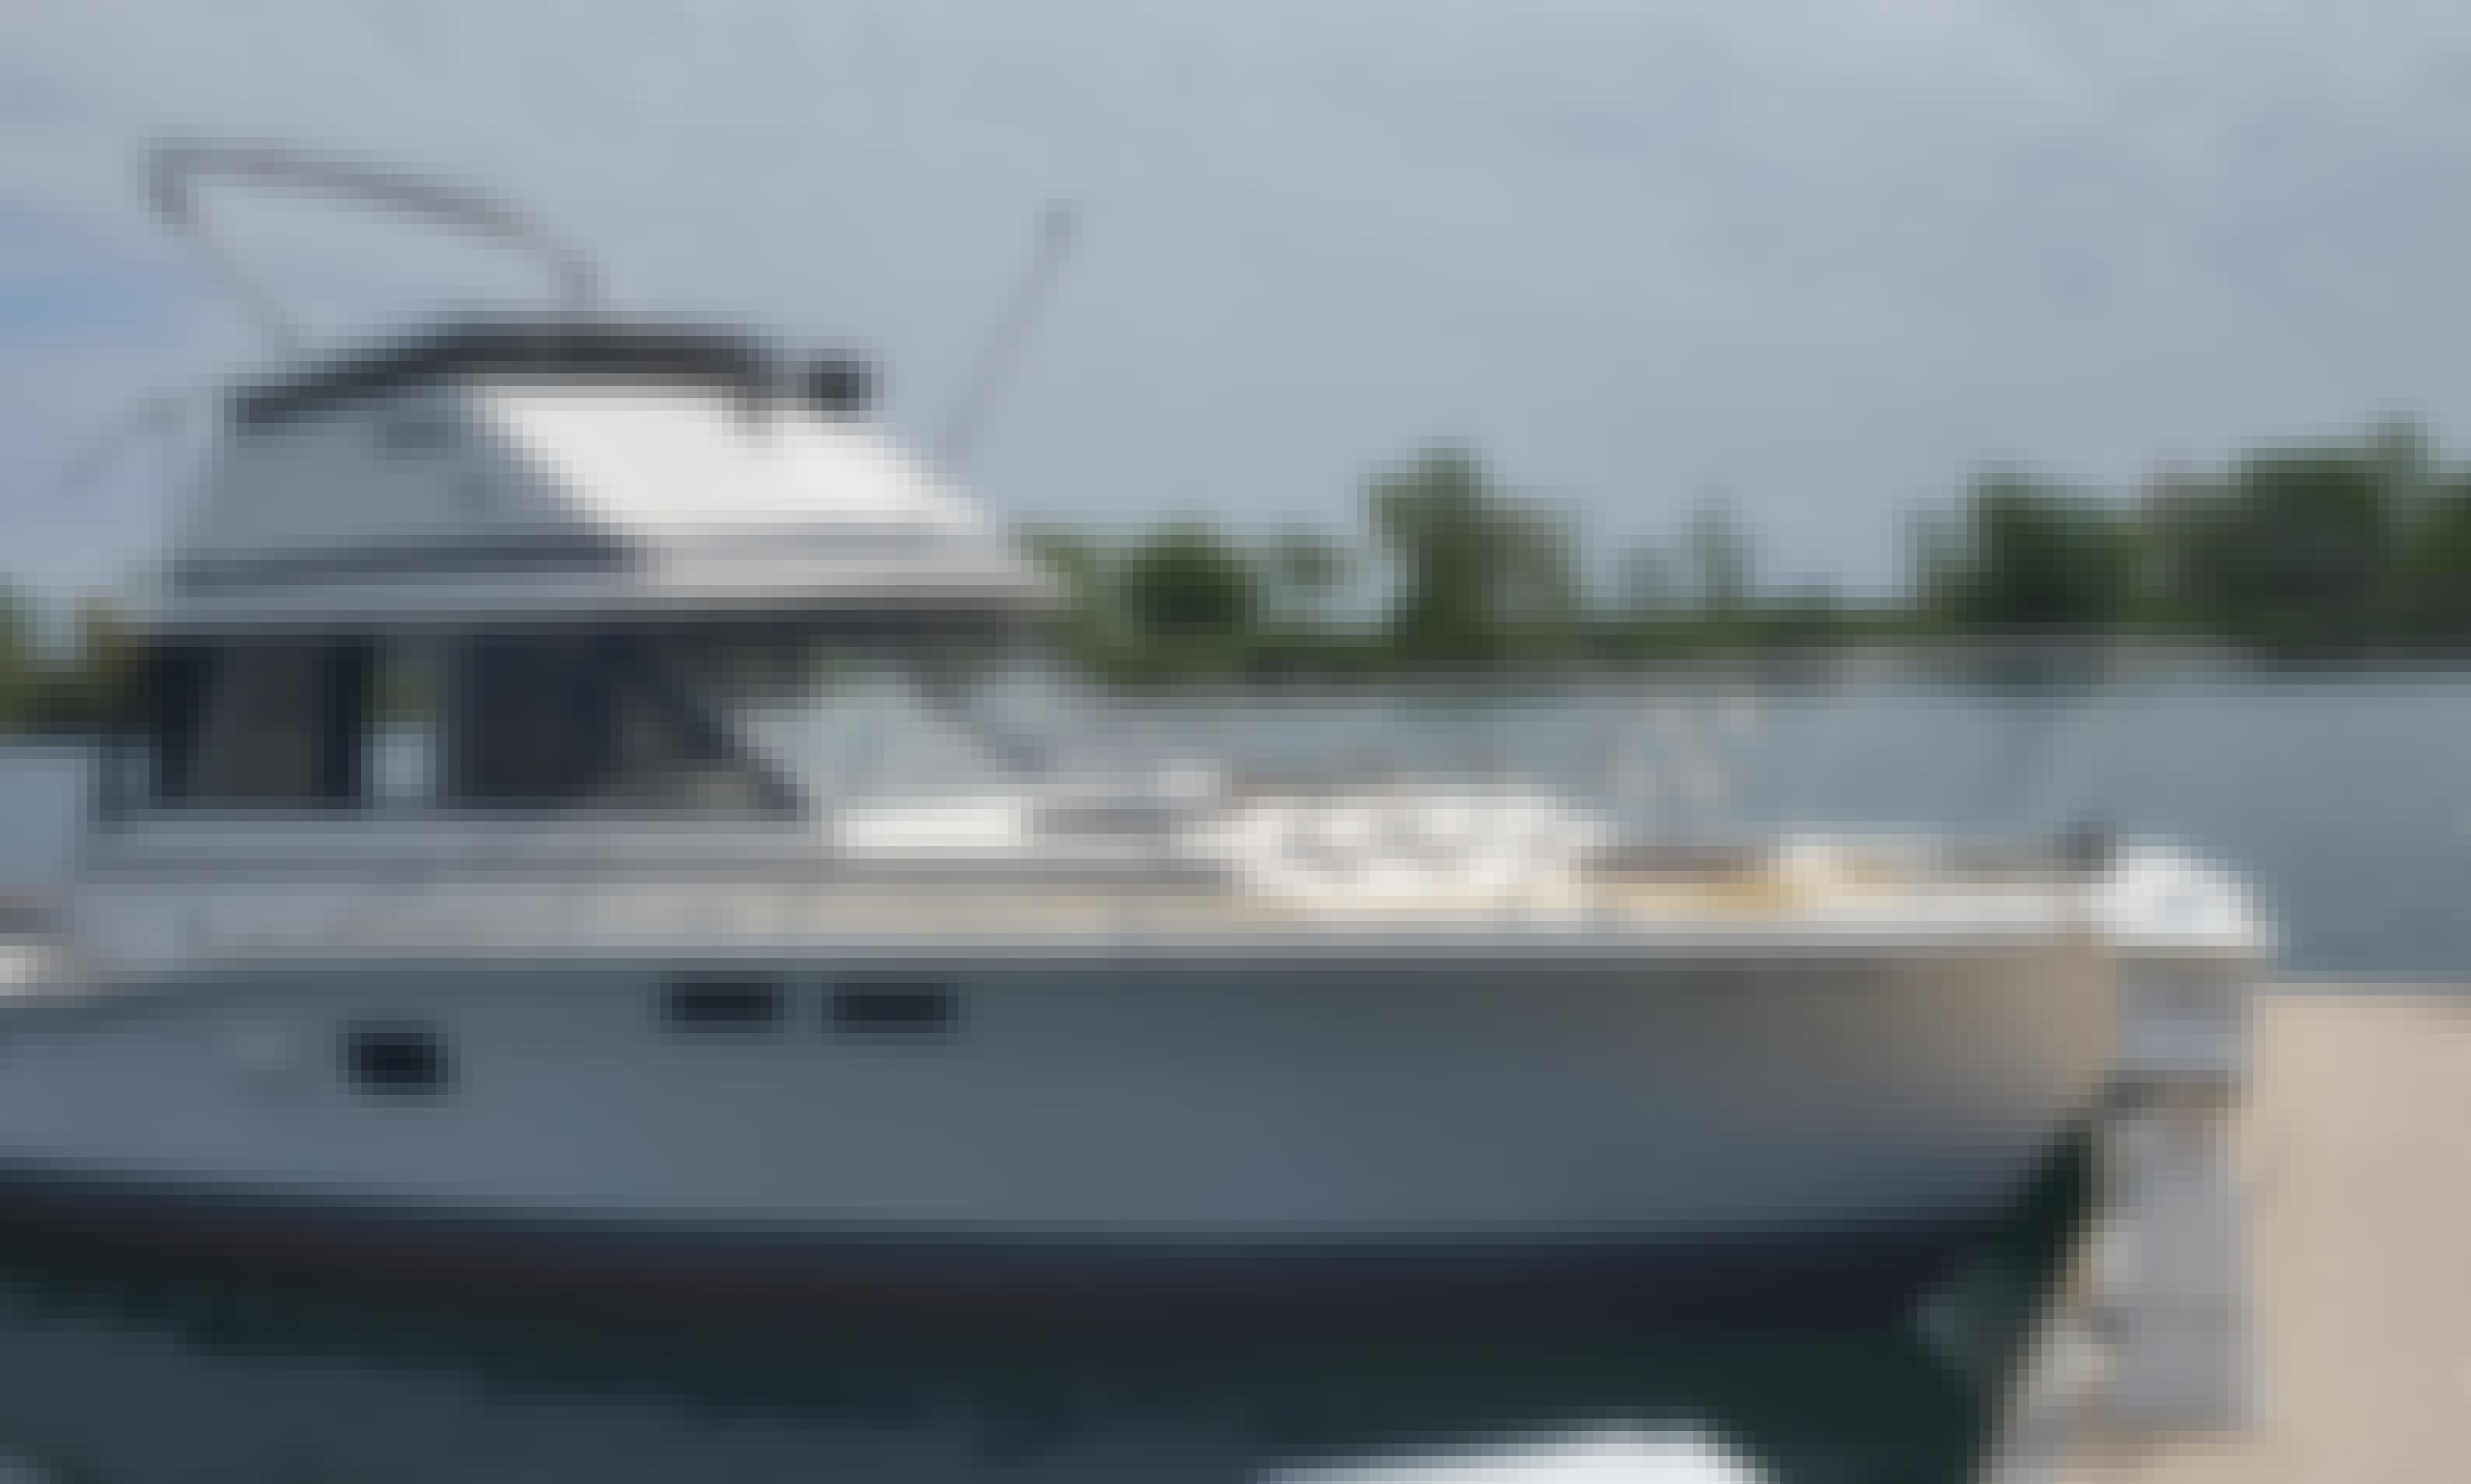 Spacious Motor Yacht Charter for 8 People in Toronto